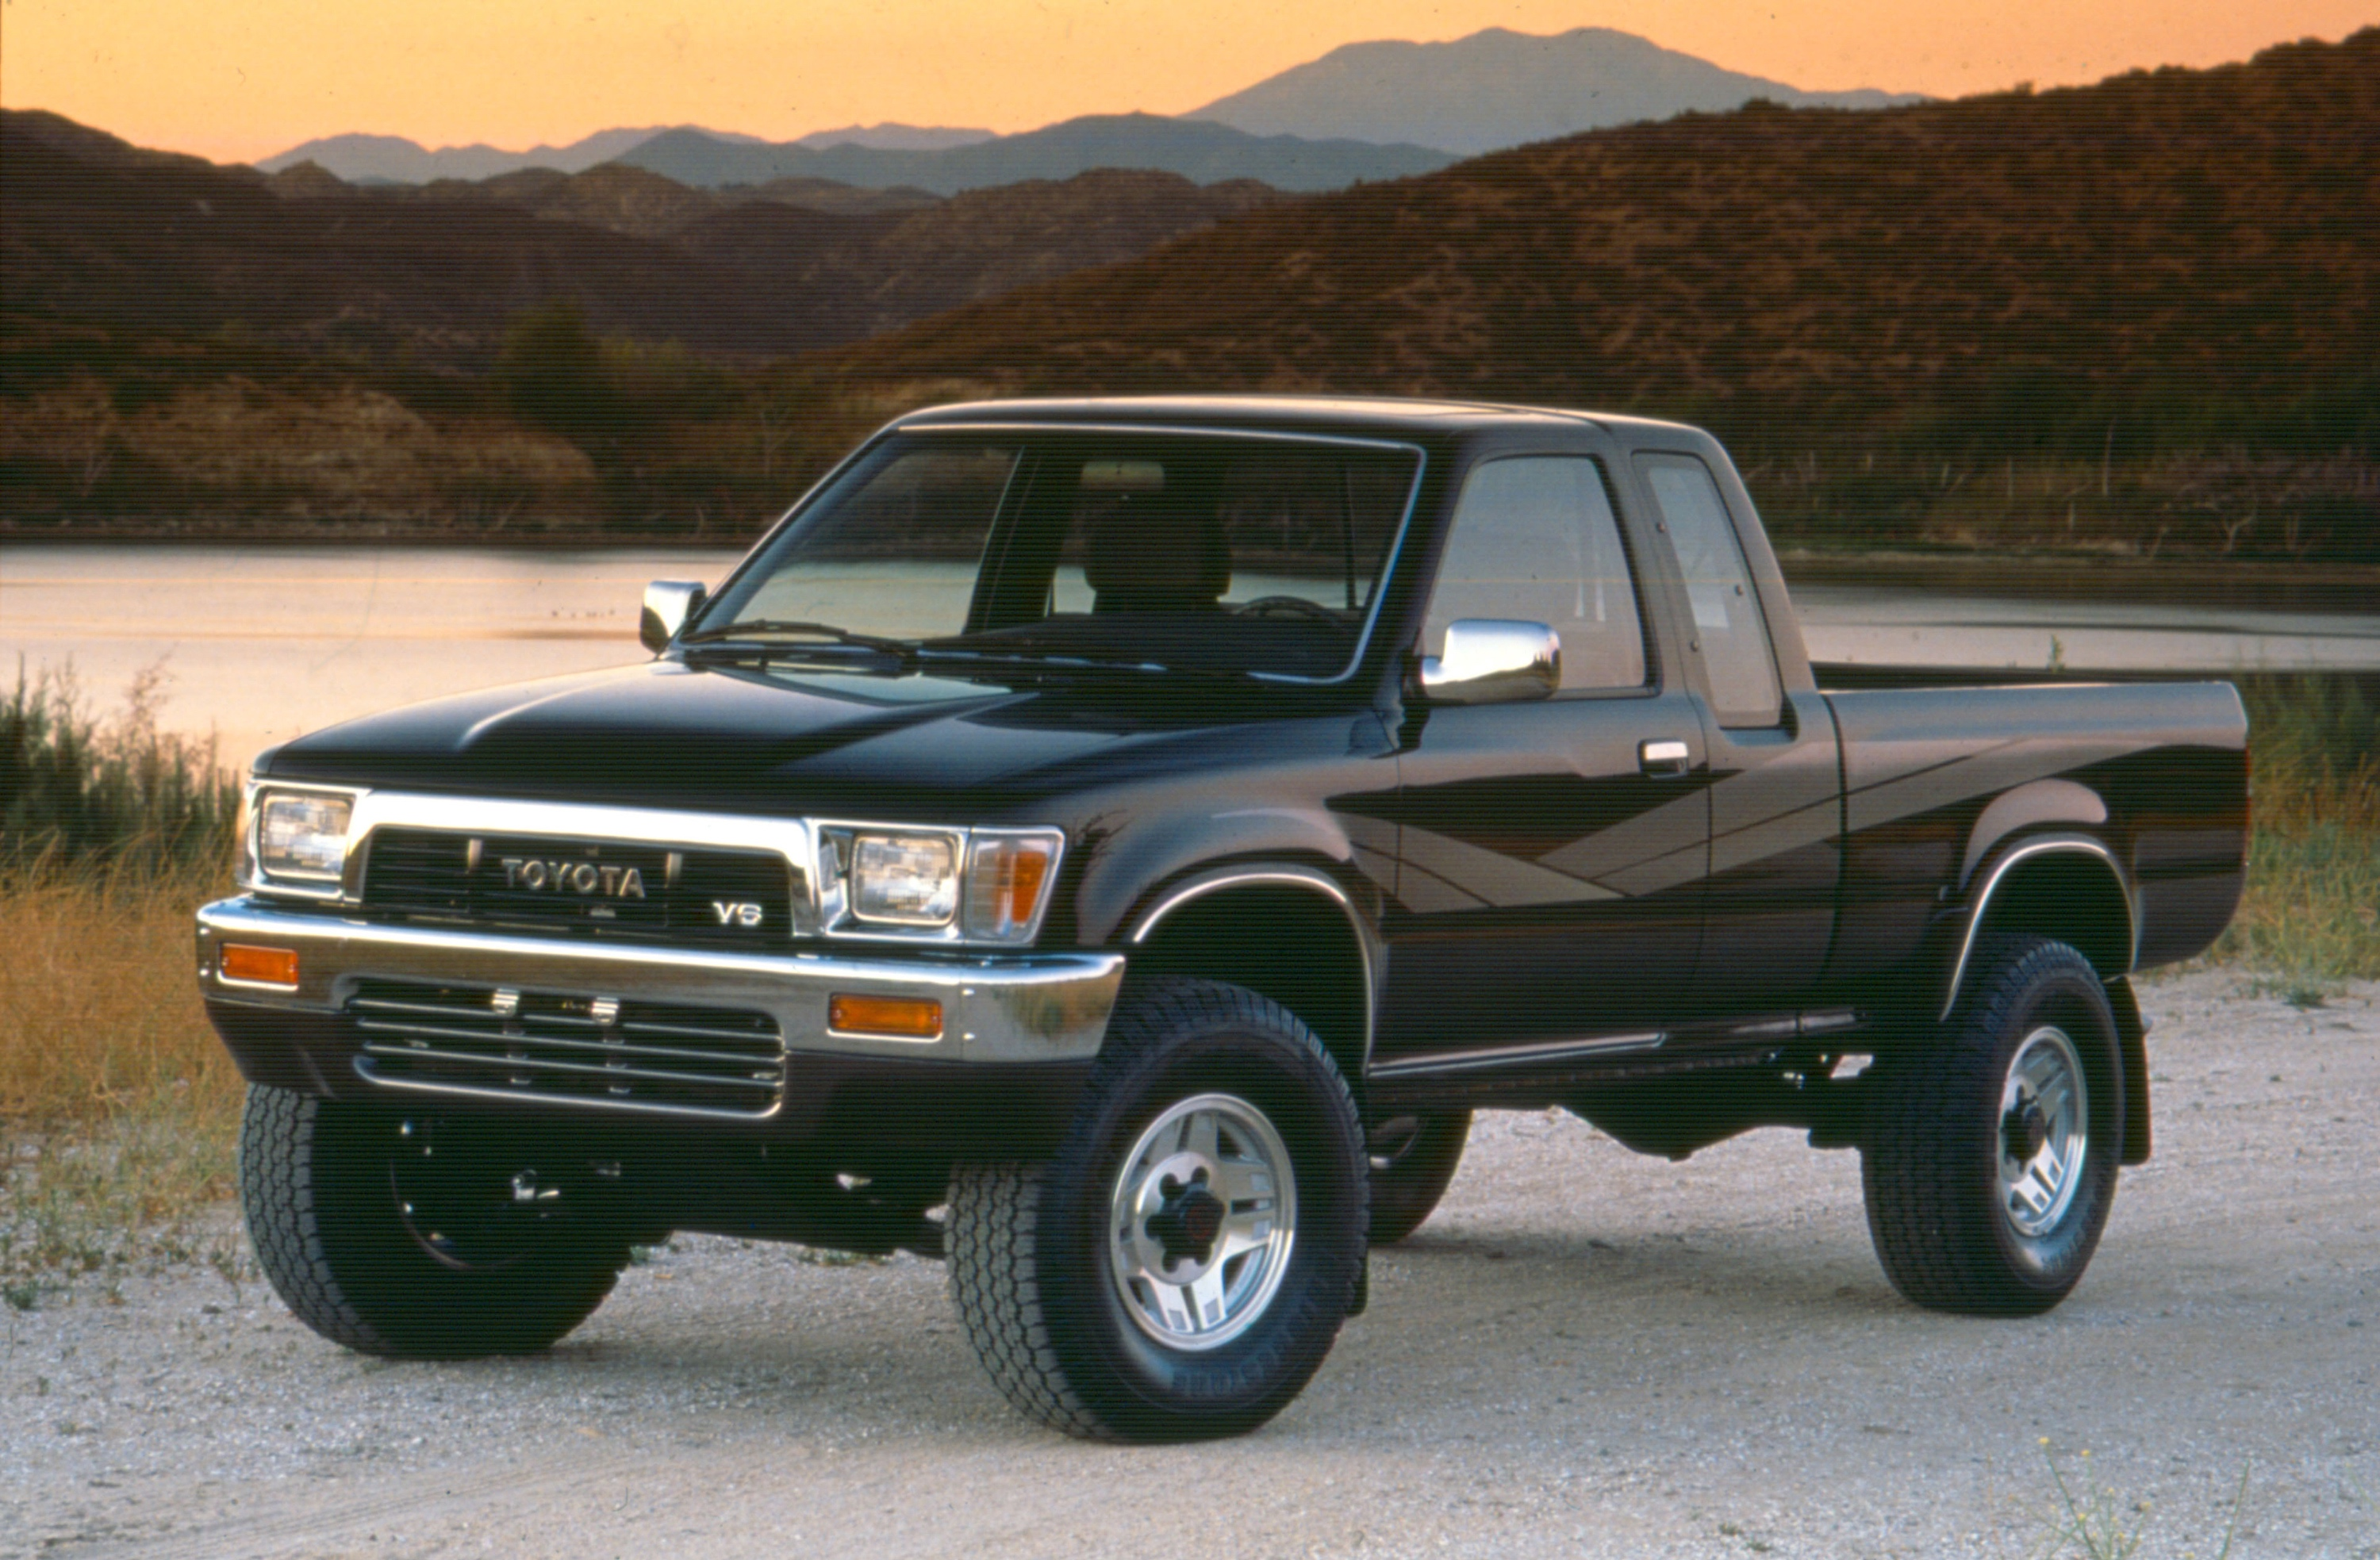 pretty tiny pickup truck.  Why You Should Buy A Used Small Pickup Truck The AutoTempest Blog